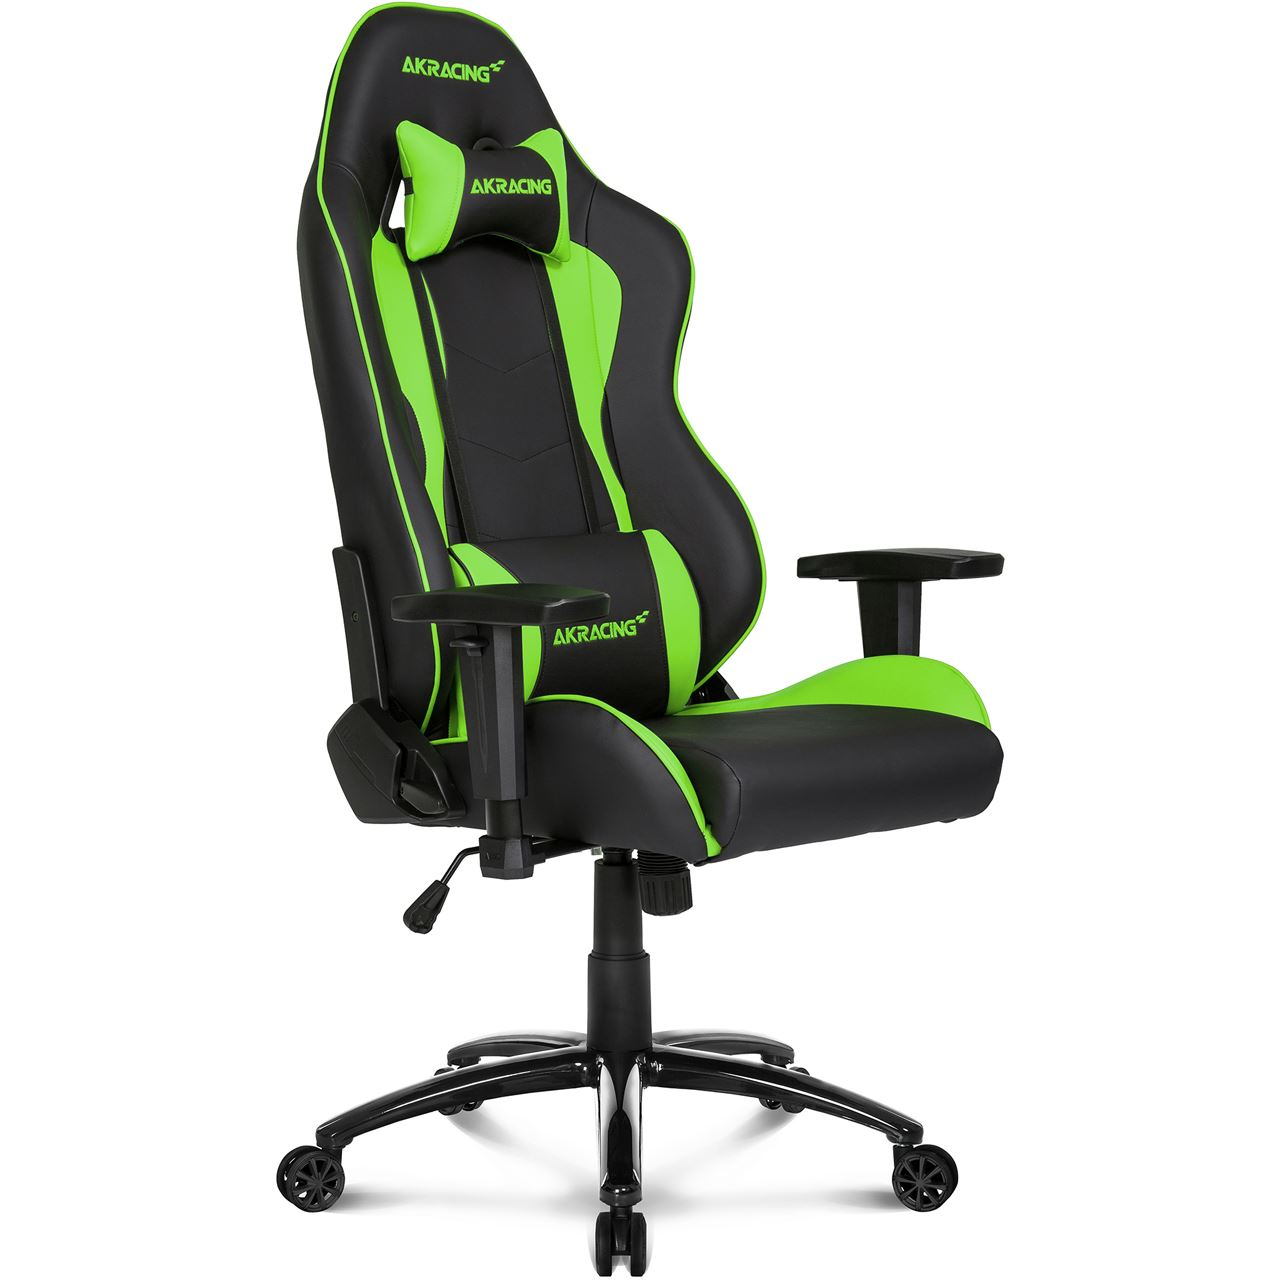 Seat Grün Akracing Nitro Gaming Chair Schwarz Grün Gaming Seats